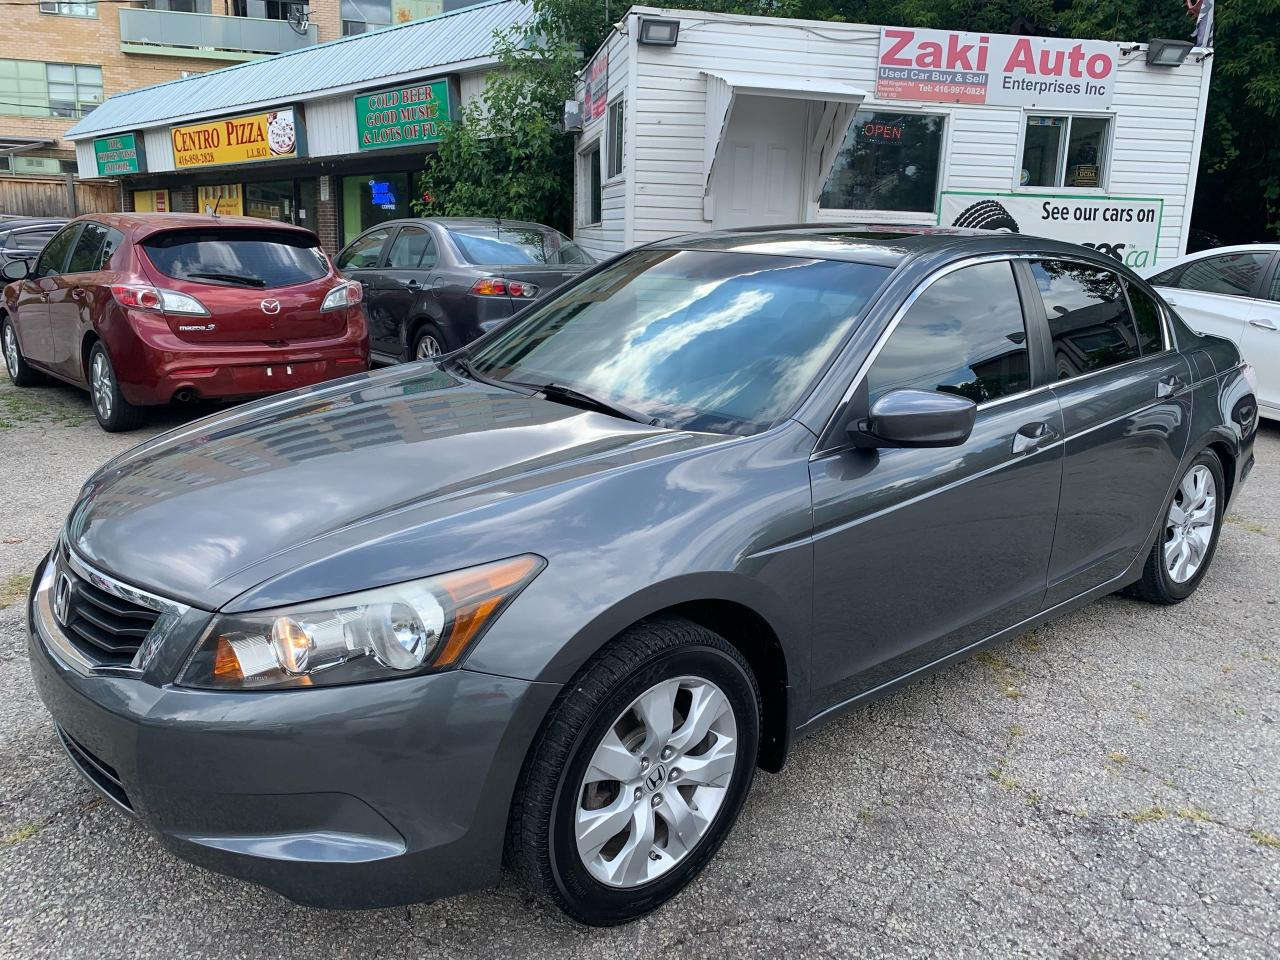 used 2010 honda accord ex safety certification included asking price for sale in toronto, ontario carpages.ca